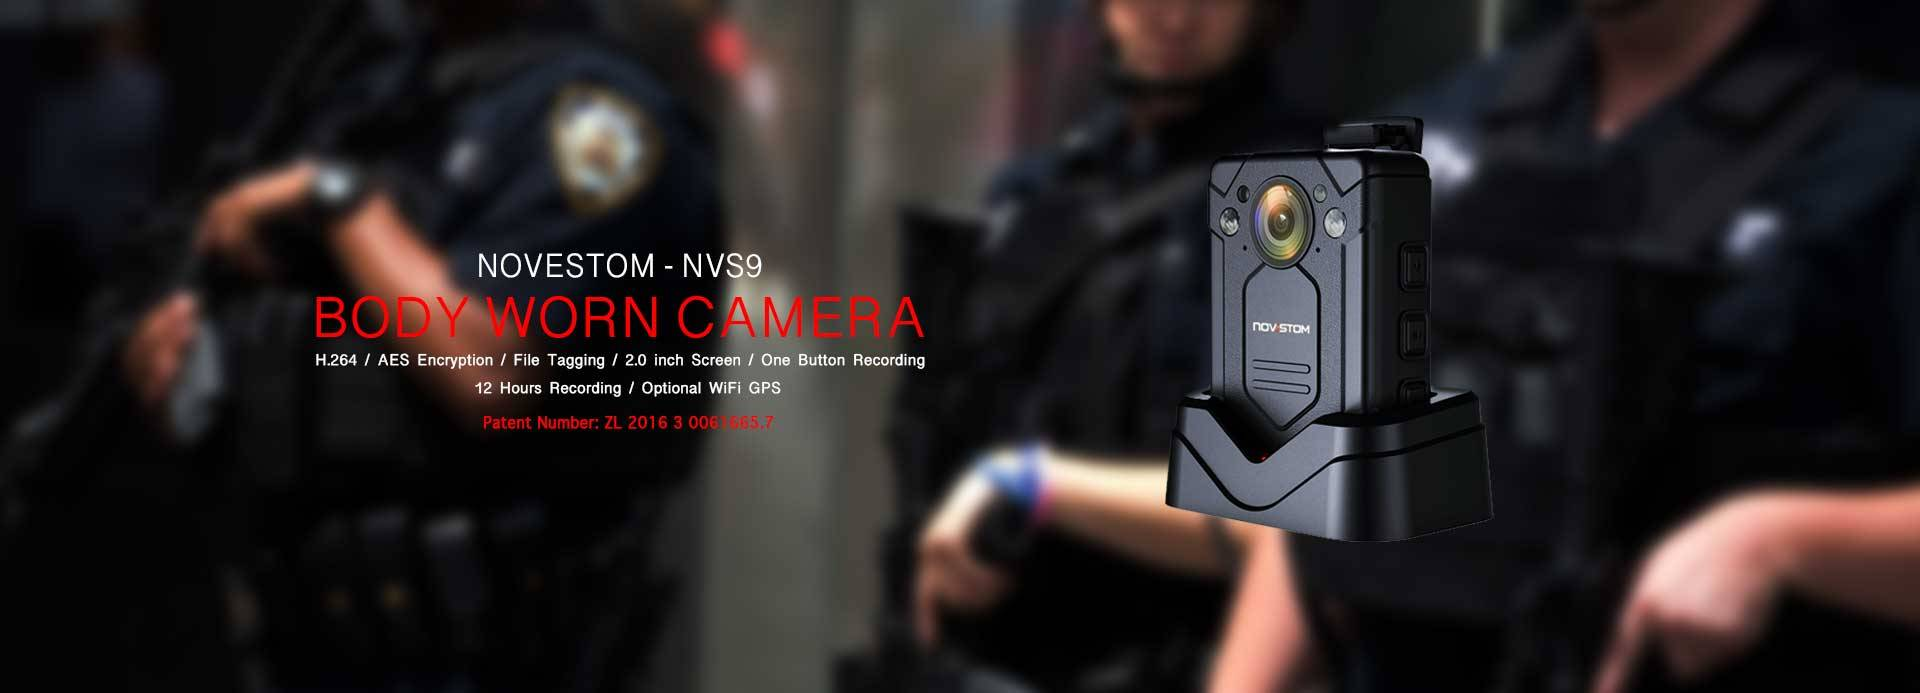 NVS9 body worn wearing video Police security cameras